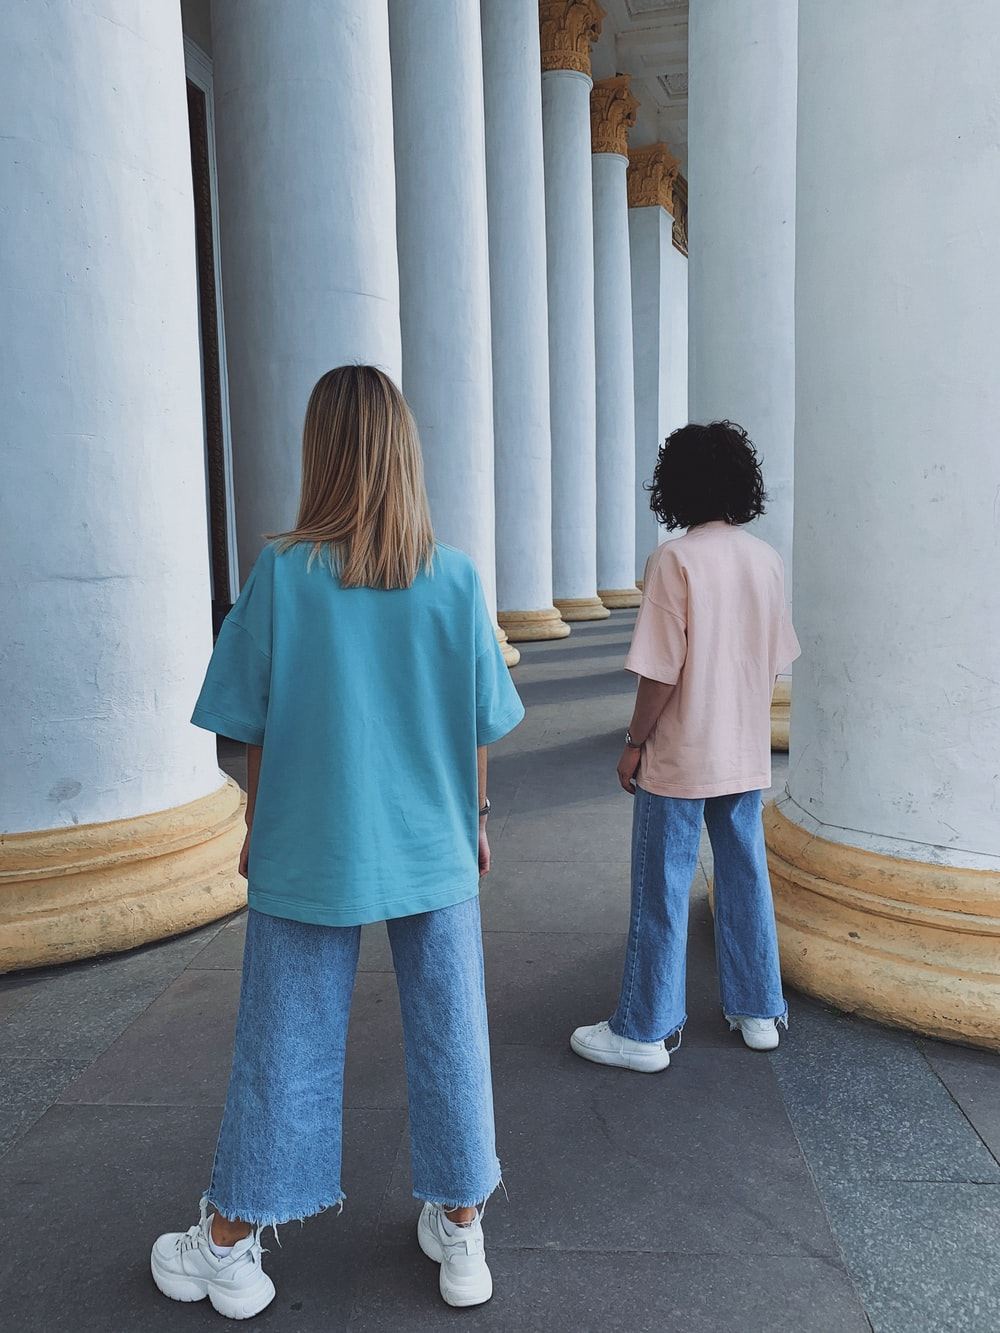 2 women standing in front of white wall